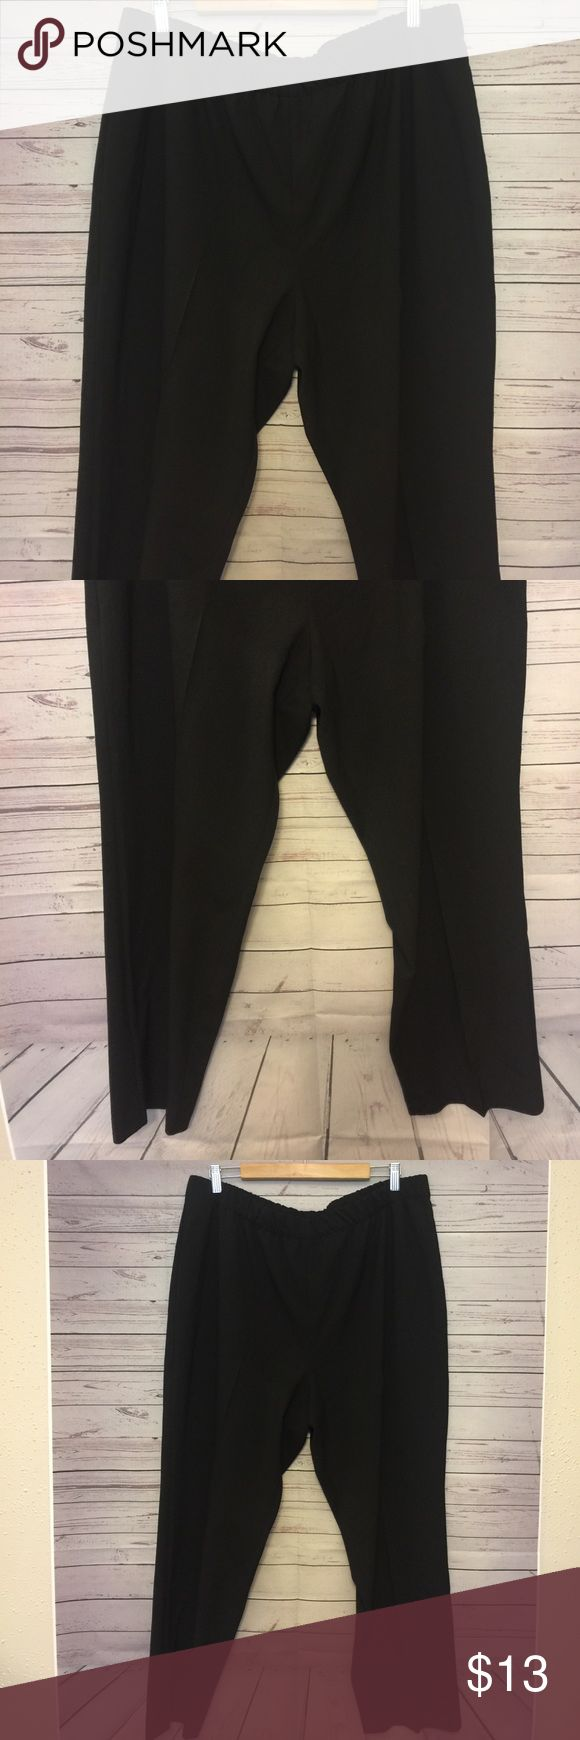 Susan Graver Women's Plus Size 22WP Pants Gently used waist 19 in Length 39 in inseam 26 in Susan Graver Pants Ankle & Cropped